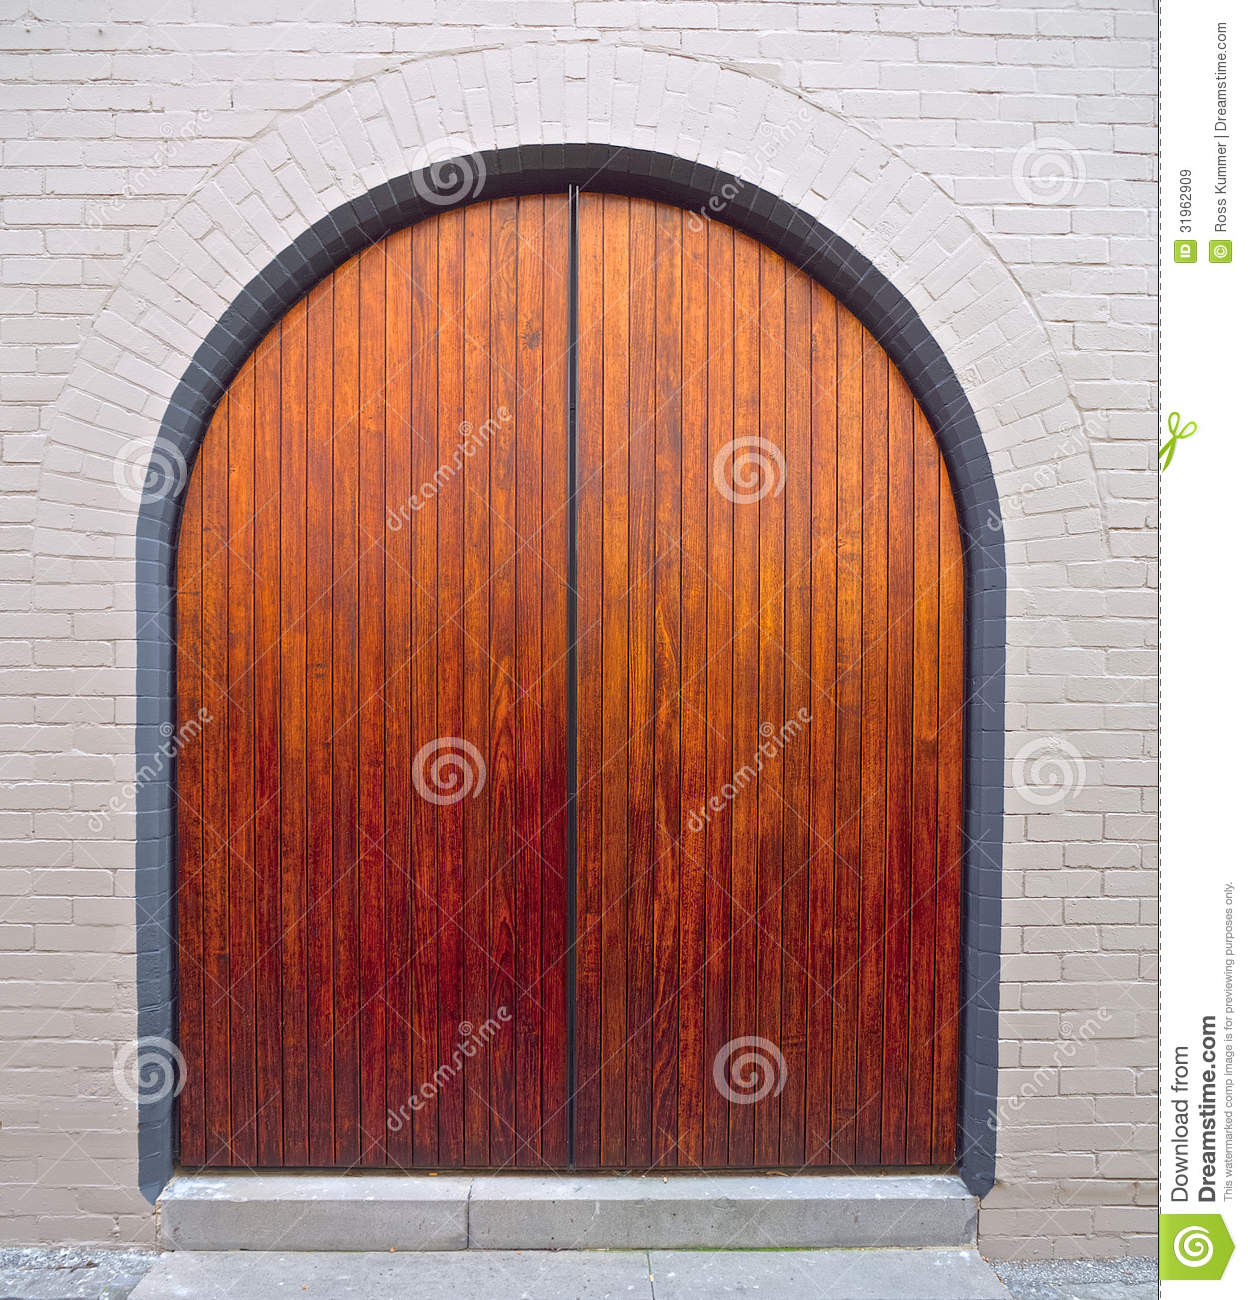 1300 #AD491E Nice Wooden Arched Door Big Wood Exterior Archway 31962909.jpg image Arched Wood Entry Doors 40831248